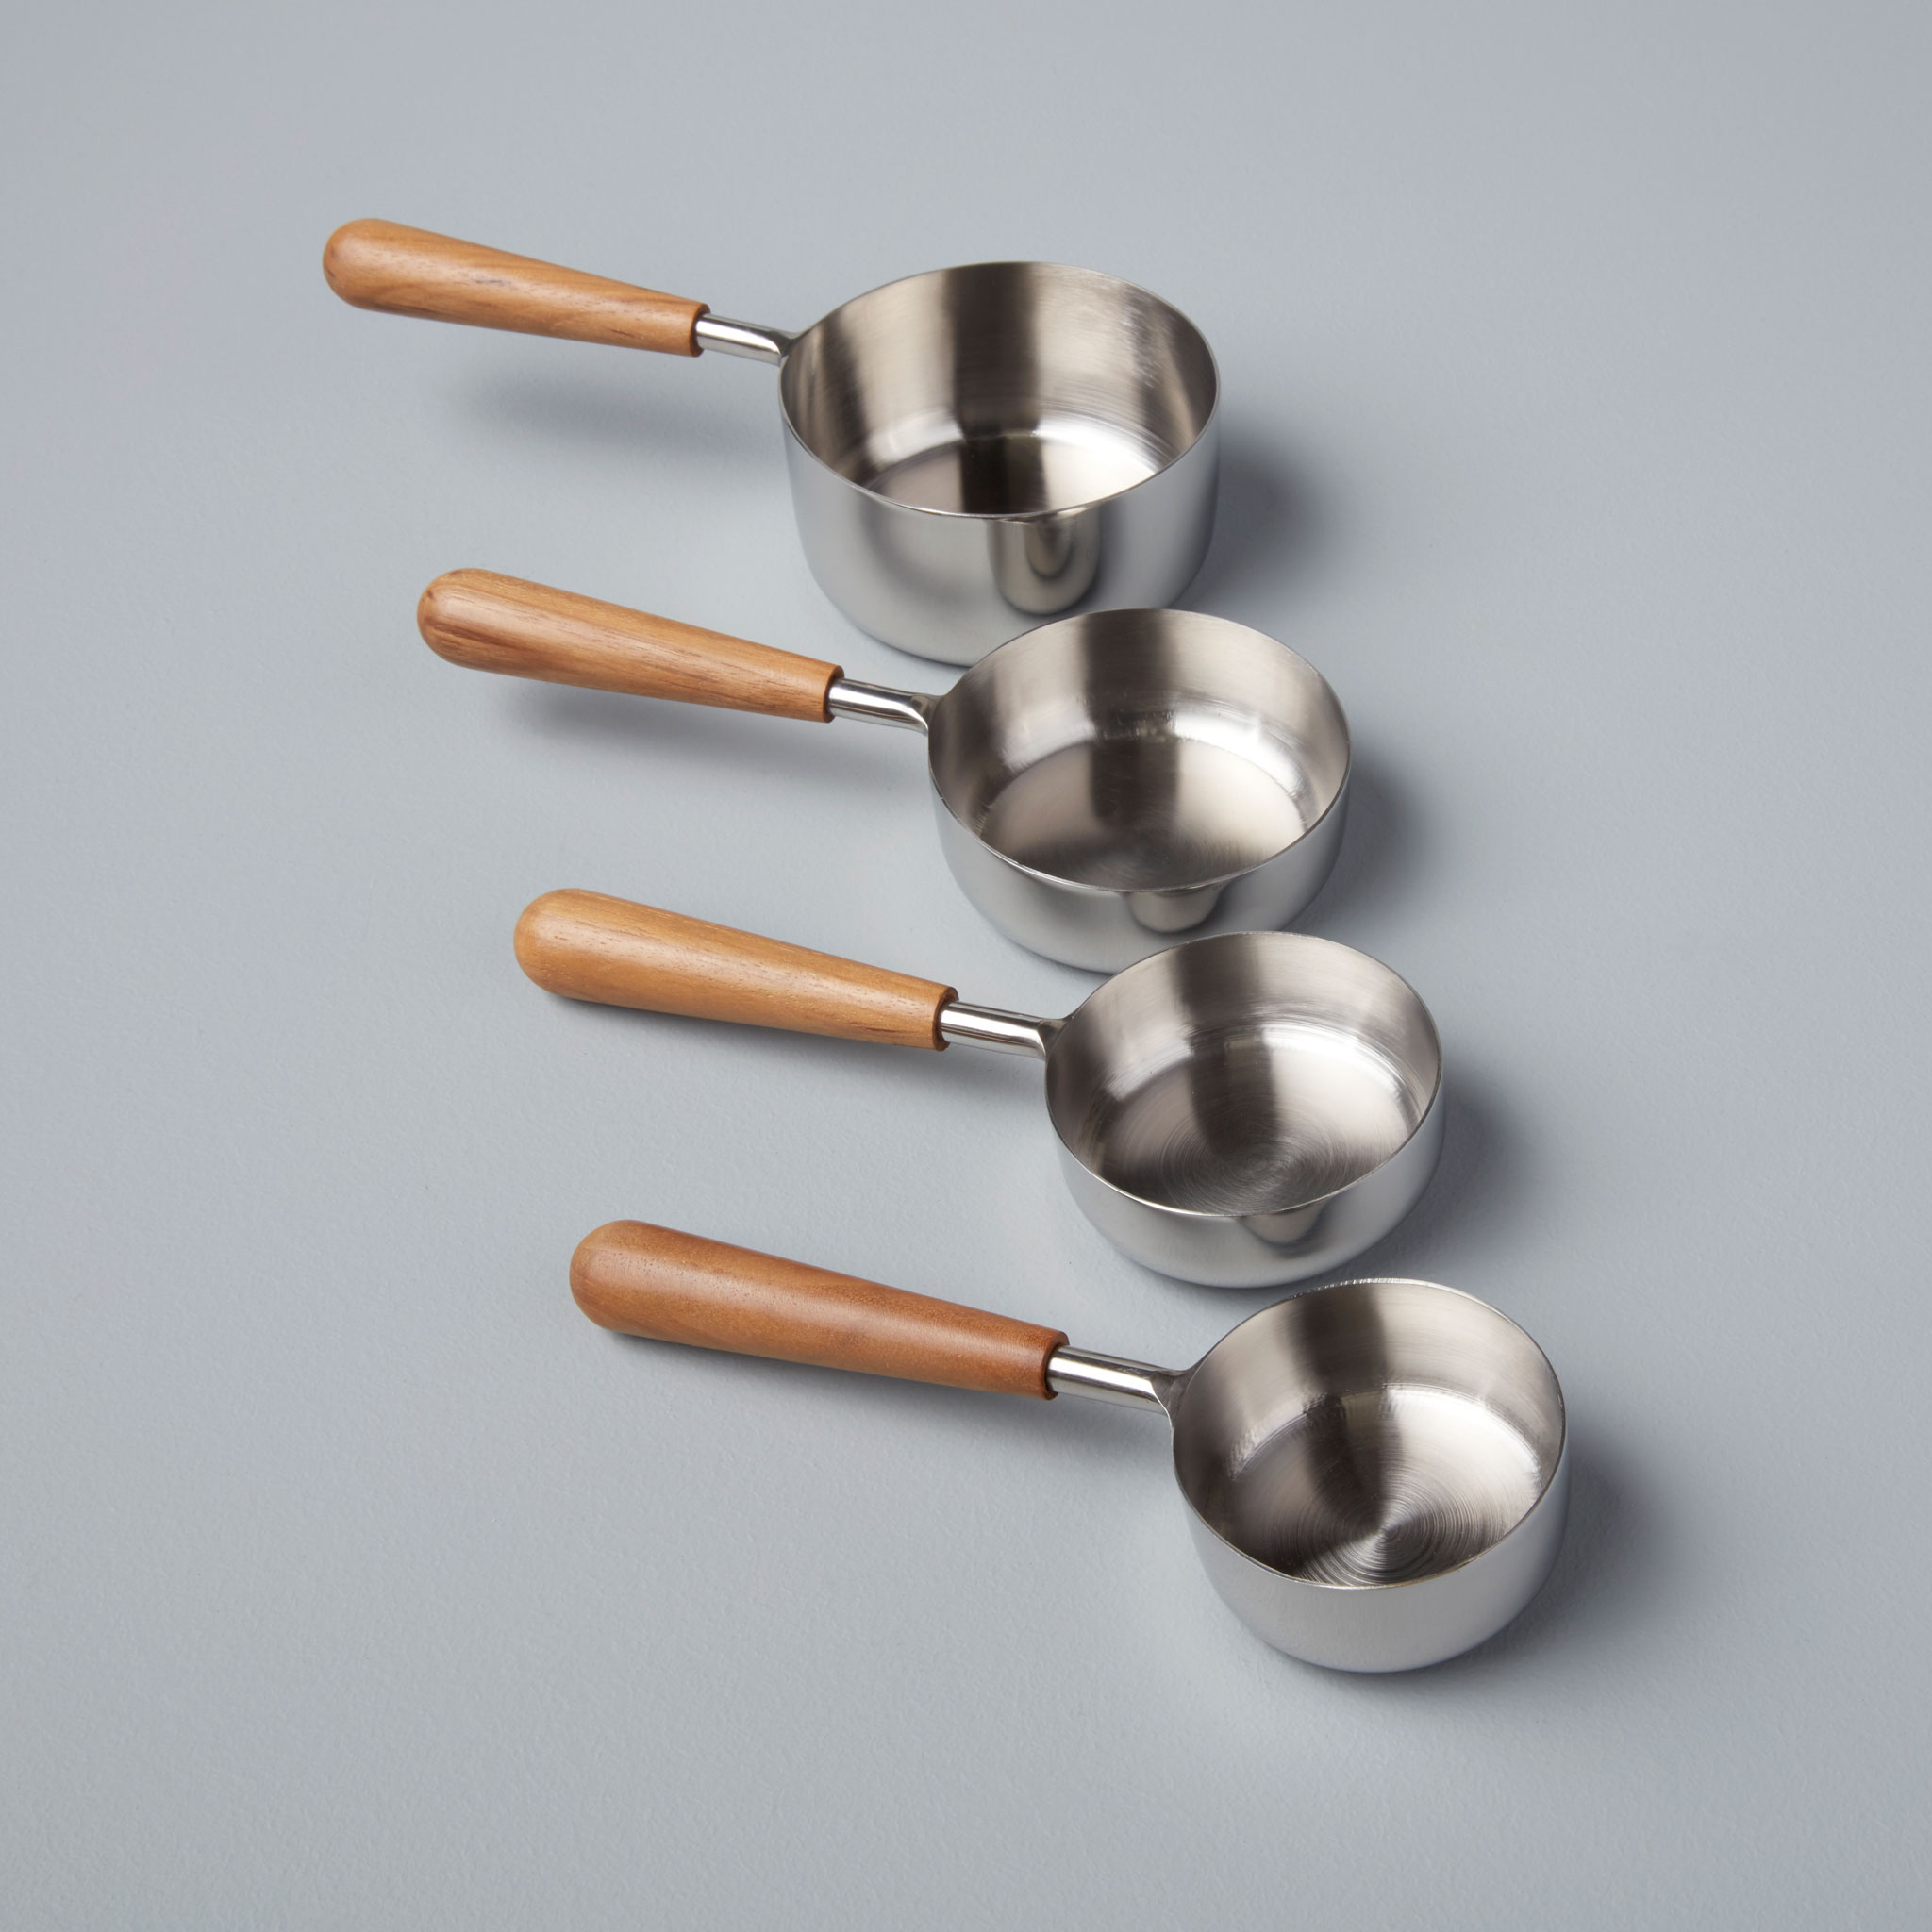 Be-Home_Teak-and-Stainless-Measuring-Cups-Set-of-4_25-19